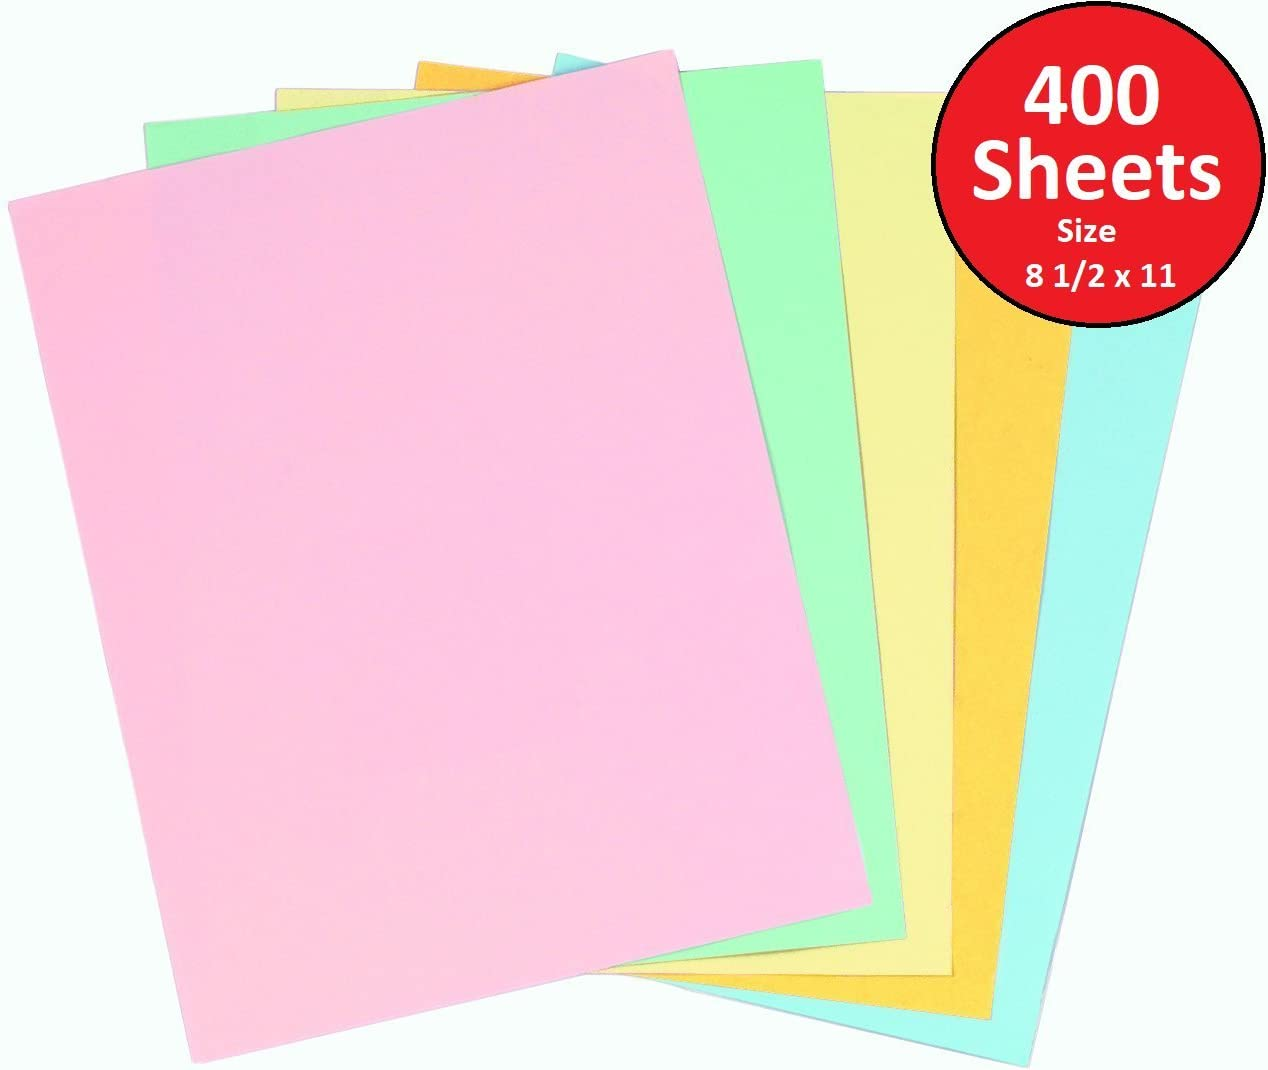 1InTheOffice Pastels Colored Copy Paper, Assorted, 8.5 x 11 inch Letter Size, 20lb Density, (400 Sheets)